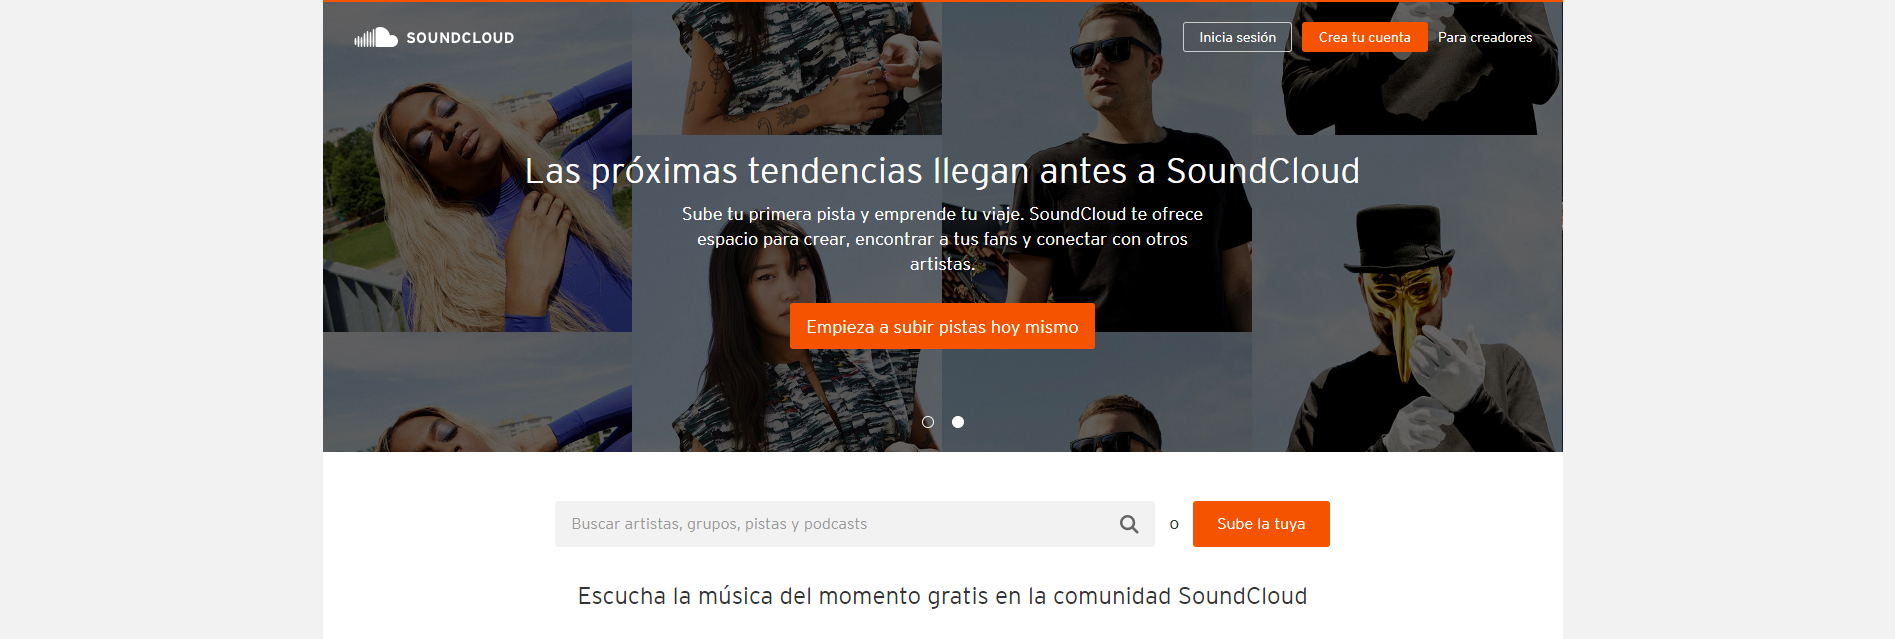 Soundcloud música sin copyright